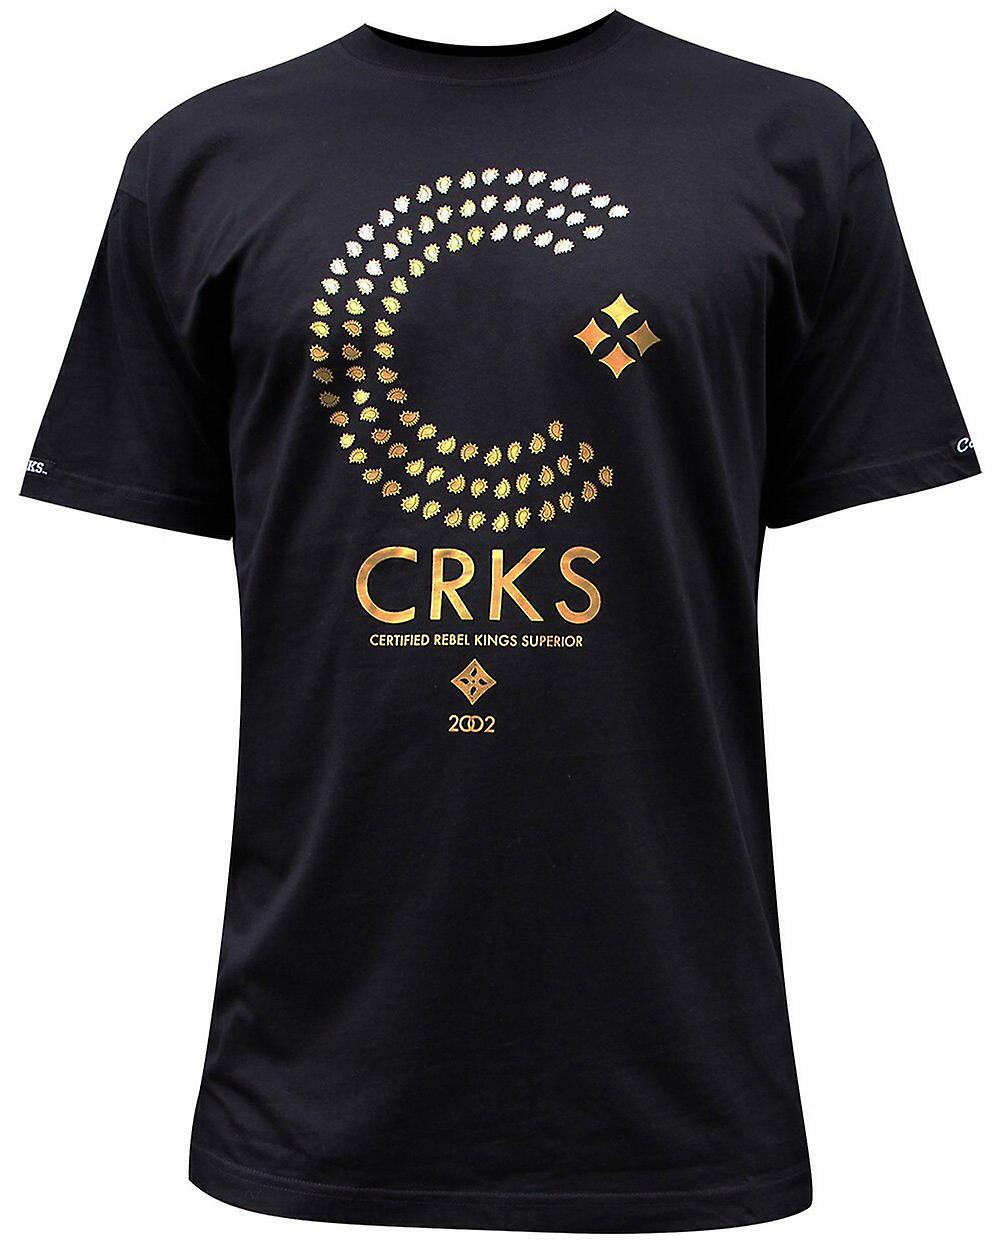 Skurkar & slott Thomas Crown T-Shirt svart